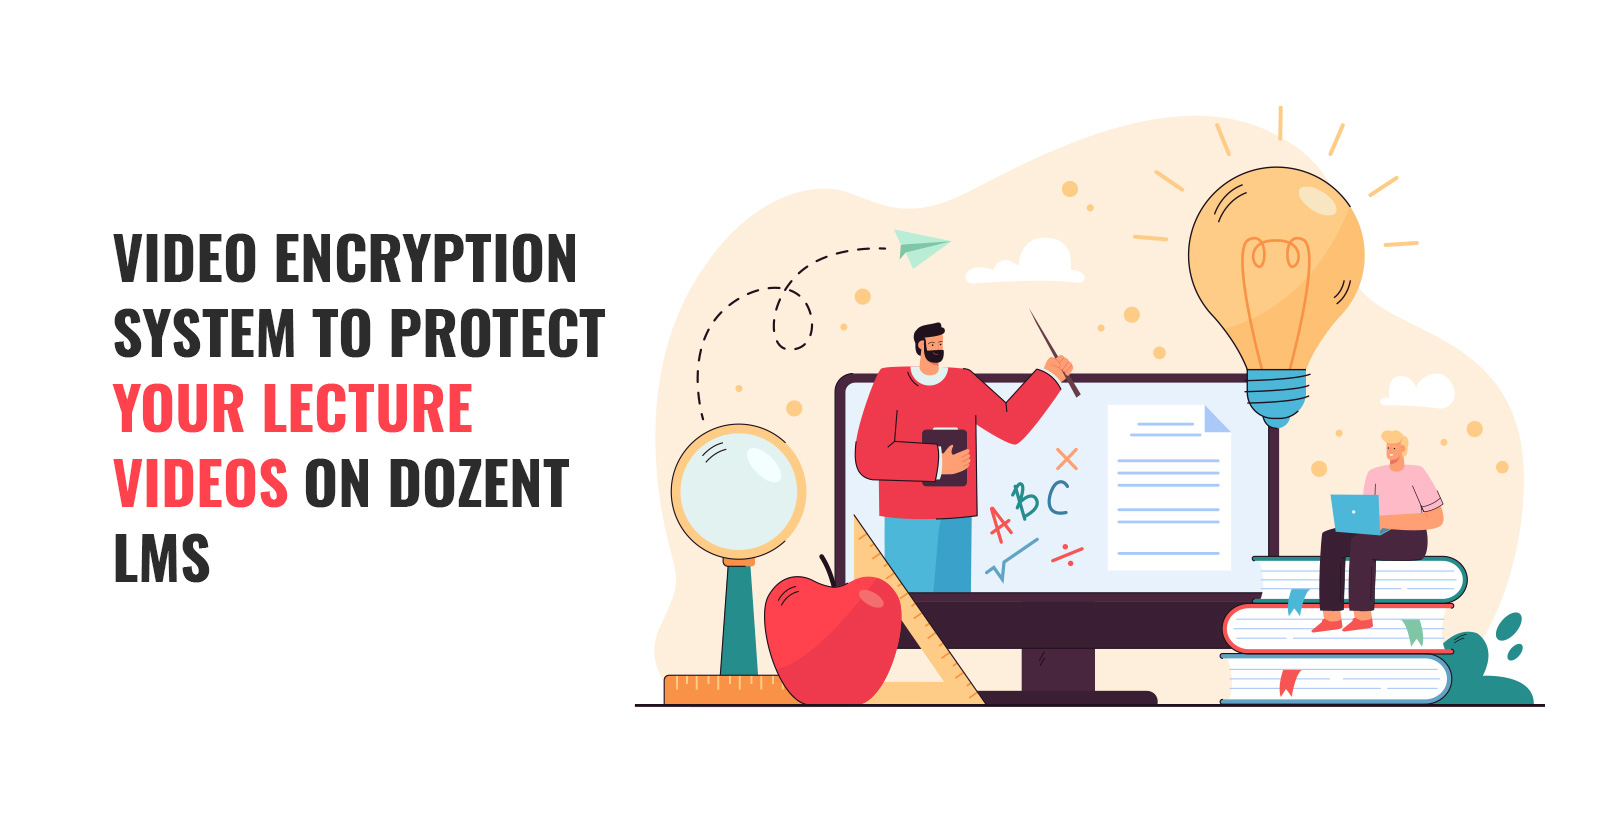 Secure video encryption system for Dozent LMS lecture videos